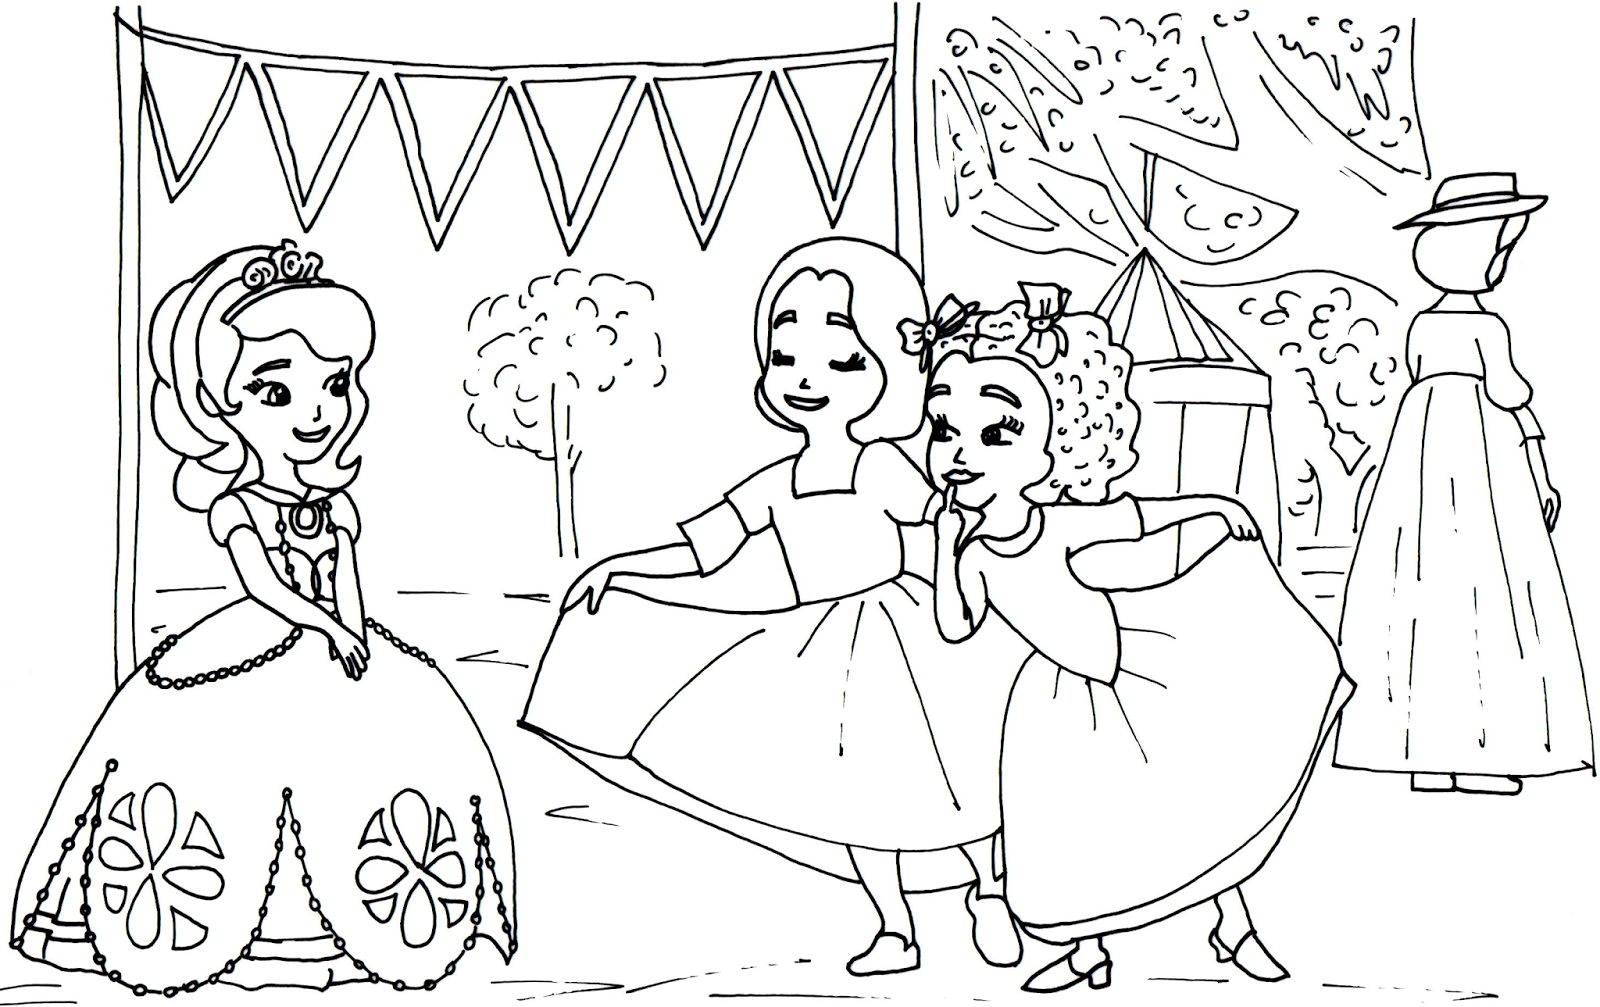 sofia coloring pages - Google Search | kids color pages | Pinterest ...